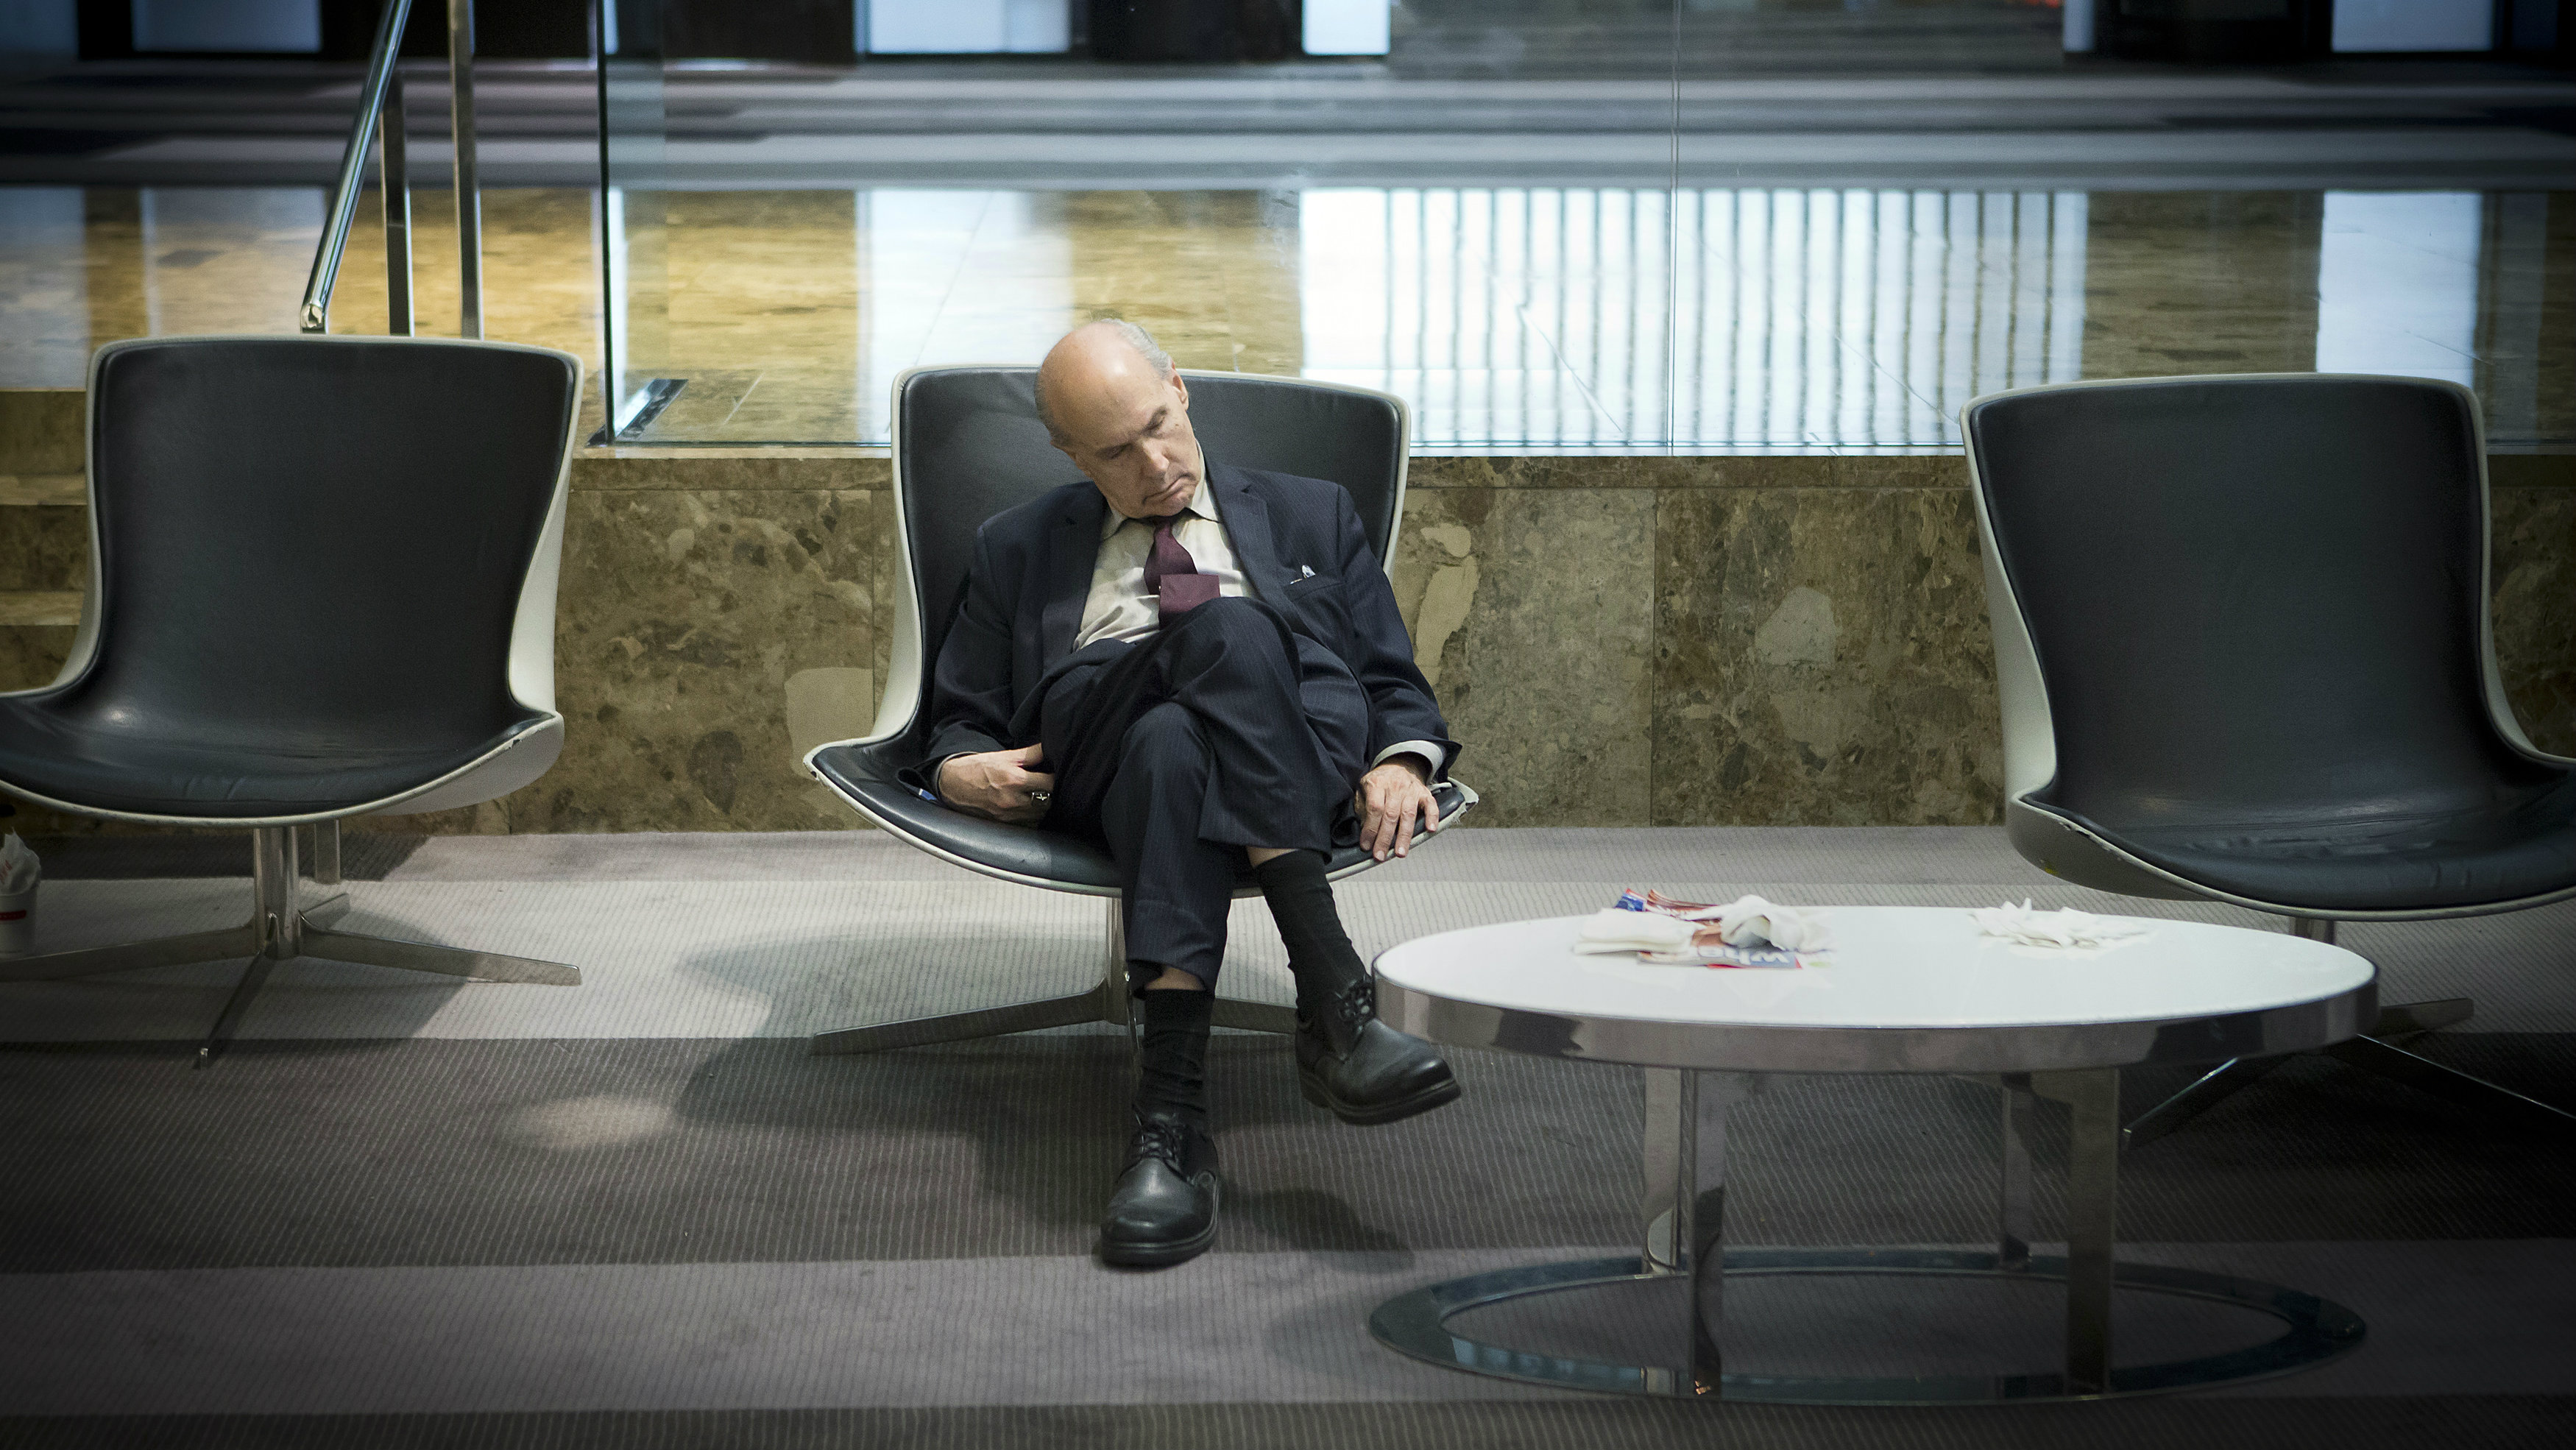 A businessman takes a mid-day nap in the lobby of a midtown hotel in the Manhattan borough of New York August 1, 2014. REUTERS/Carlo Allegri (UNITED STATES - Tags: SOCIETY BUSINESS)